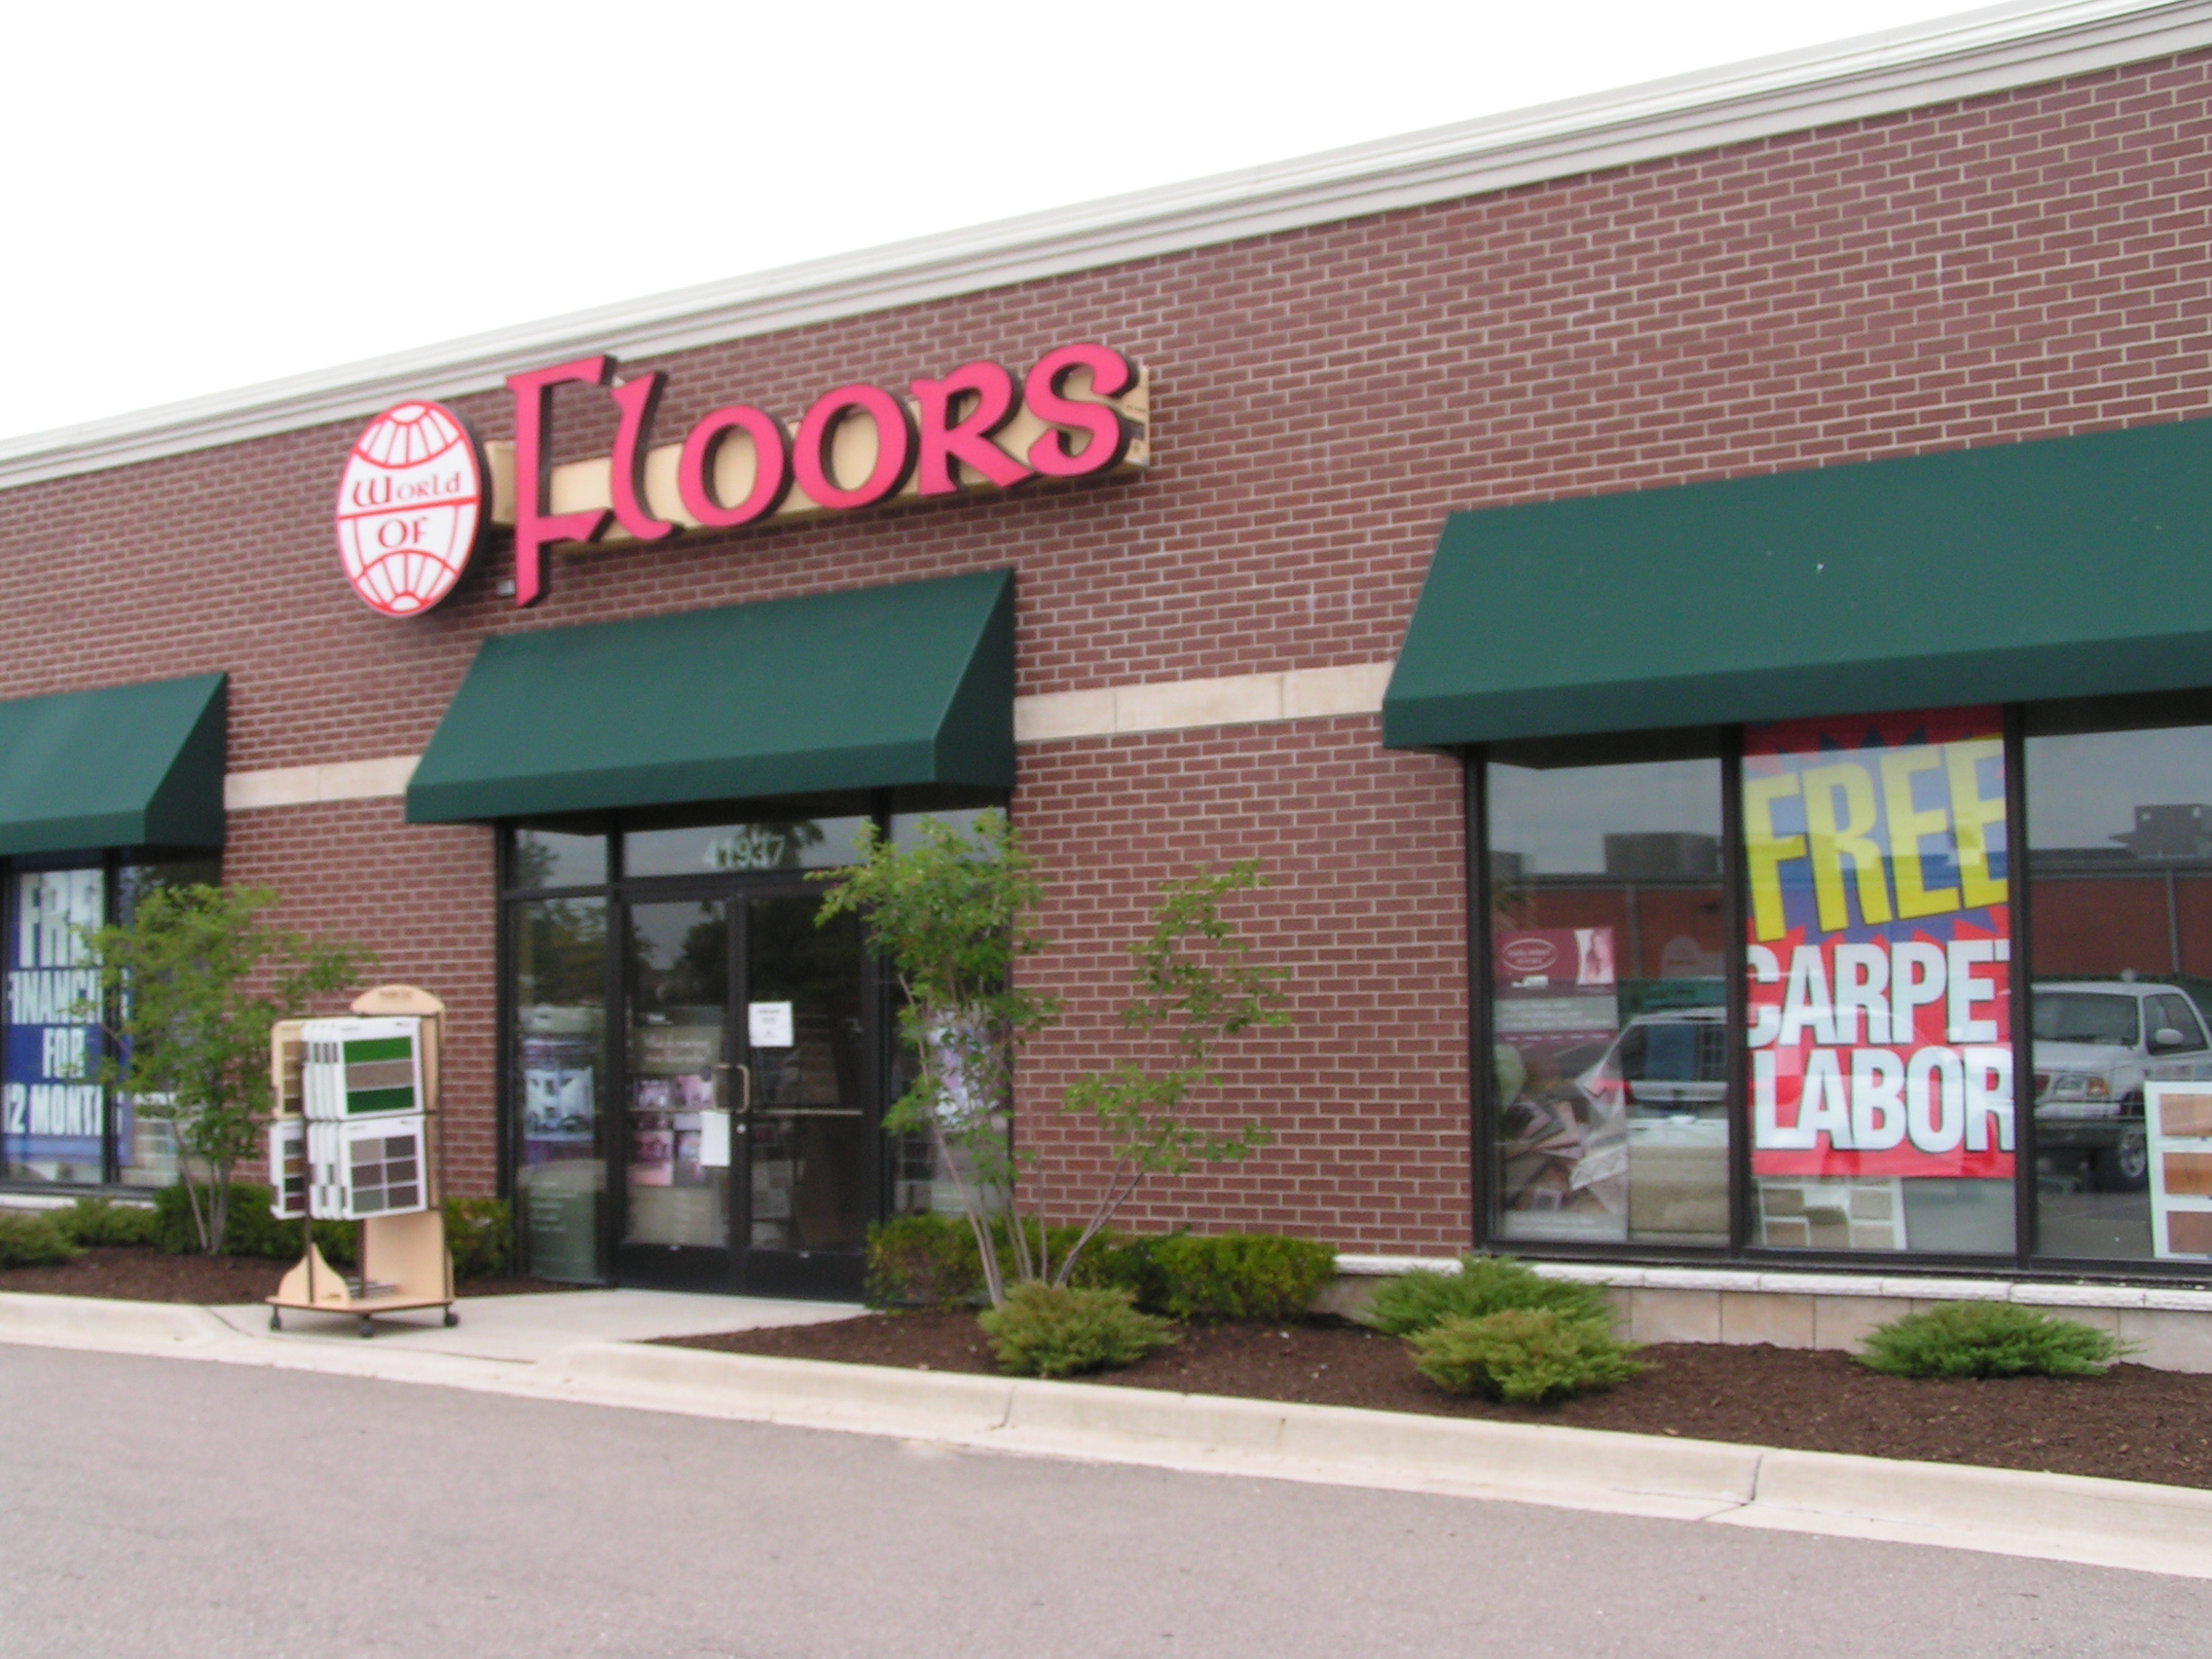 World of Floors Canton Store front